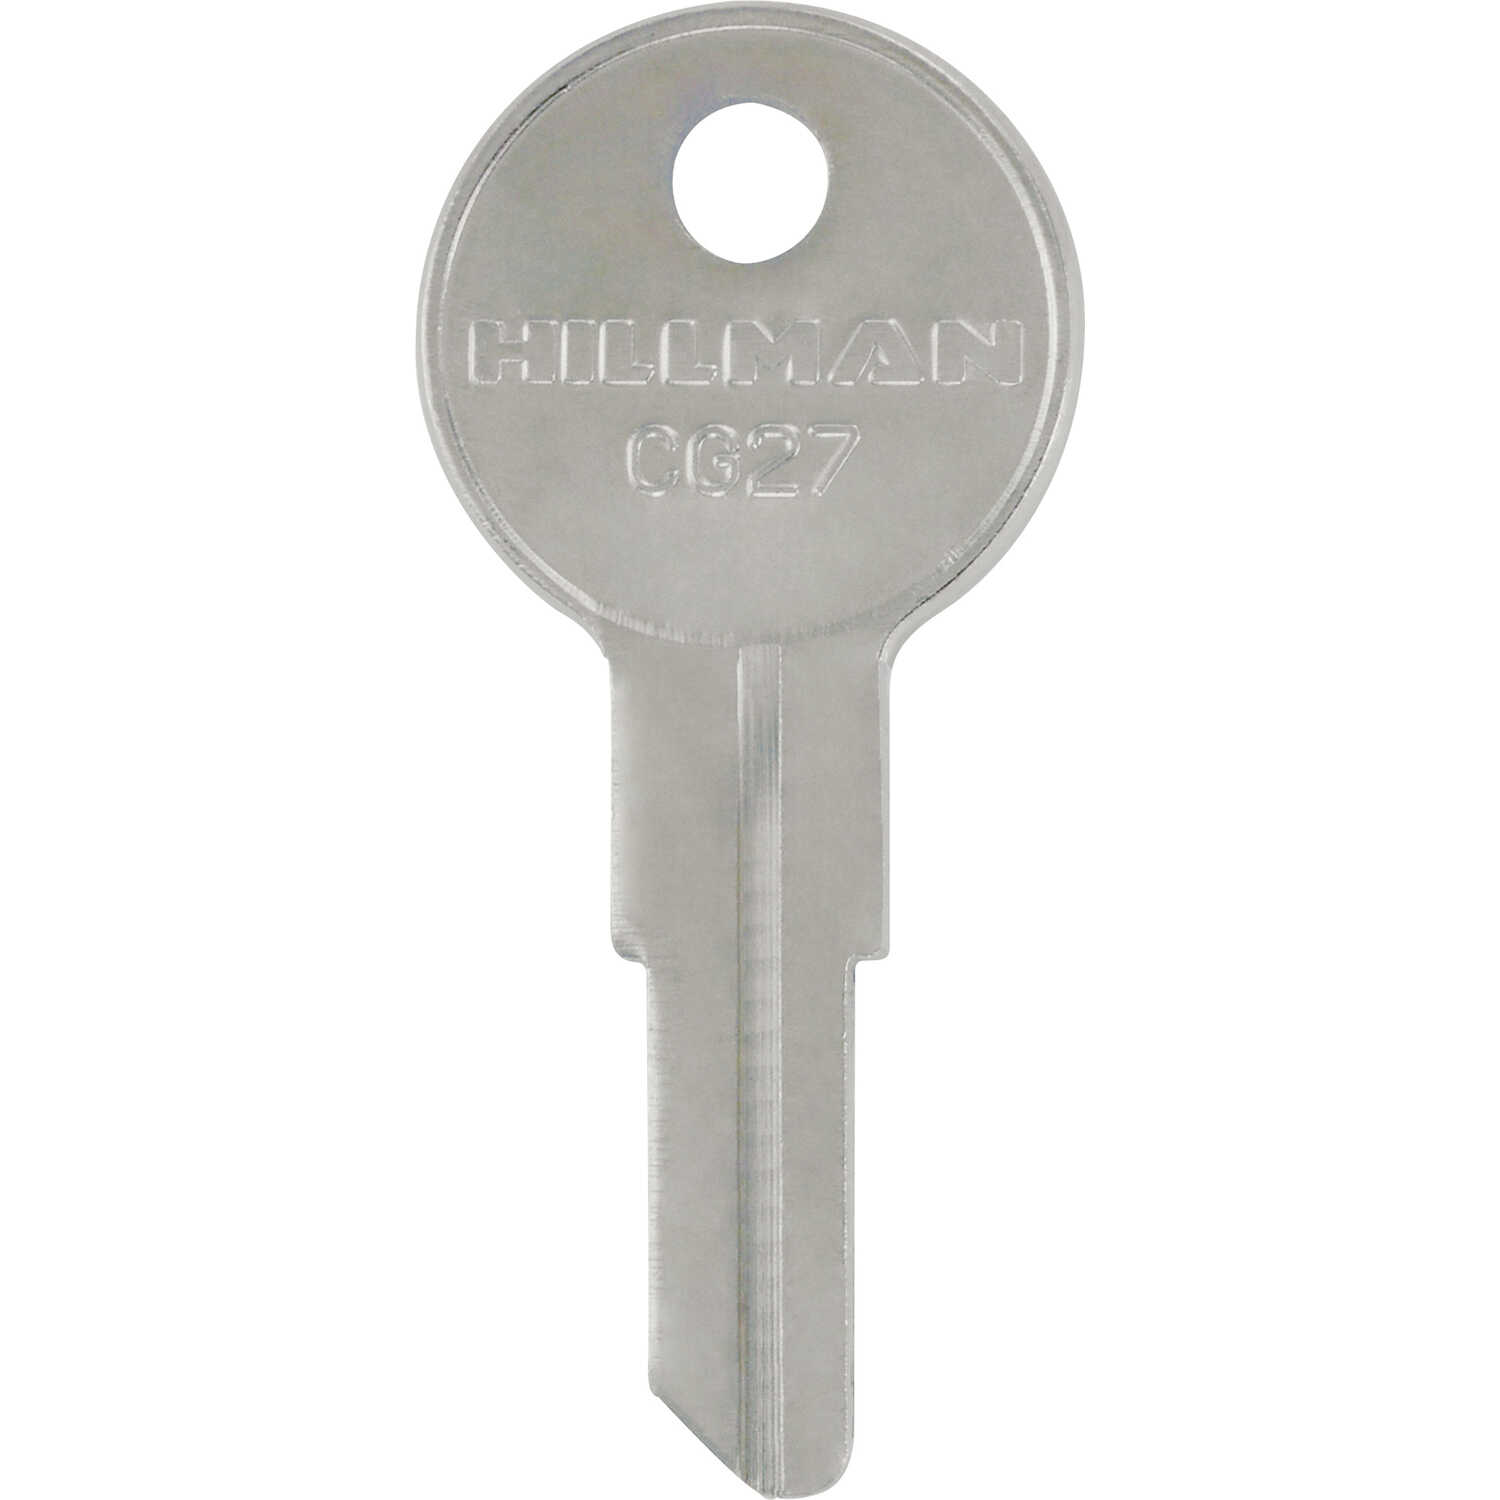 HILLMAN  Automotive  Universal Key Blank  CG27  Single sided For Chicago